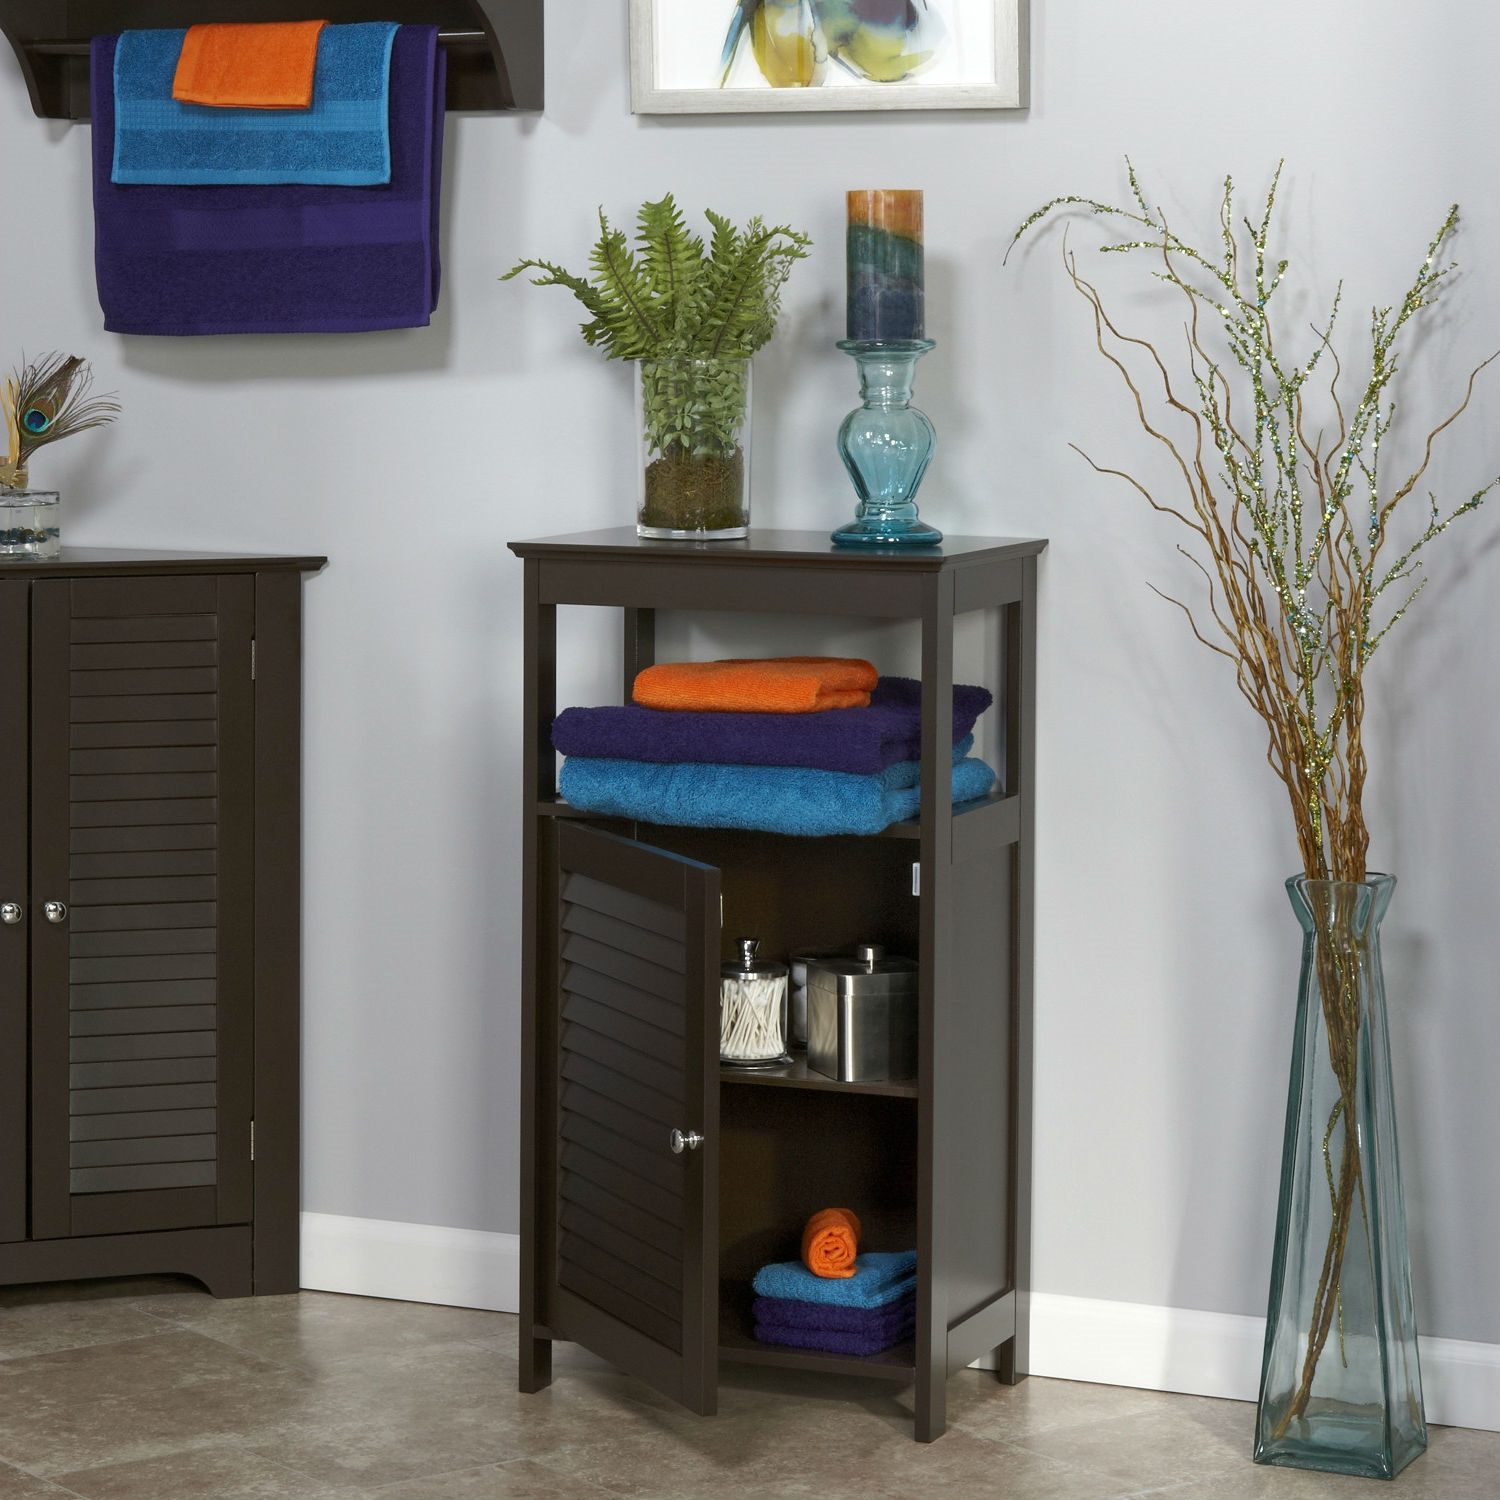 Bathroom storage units free standing - Modern Bathroom Floor Cabinet Free Standing Storage Unit In Espresso Wood Finish